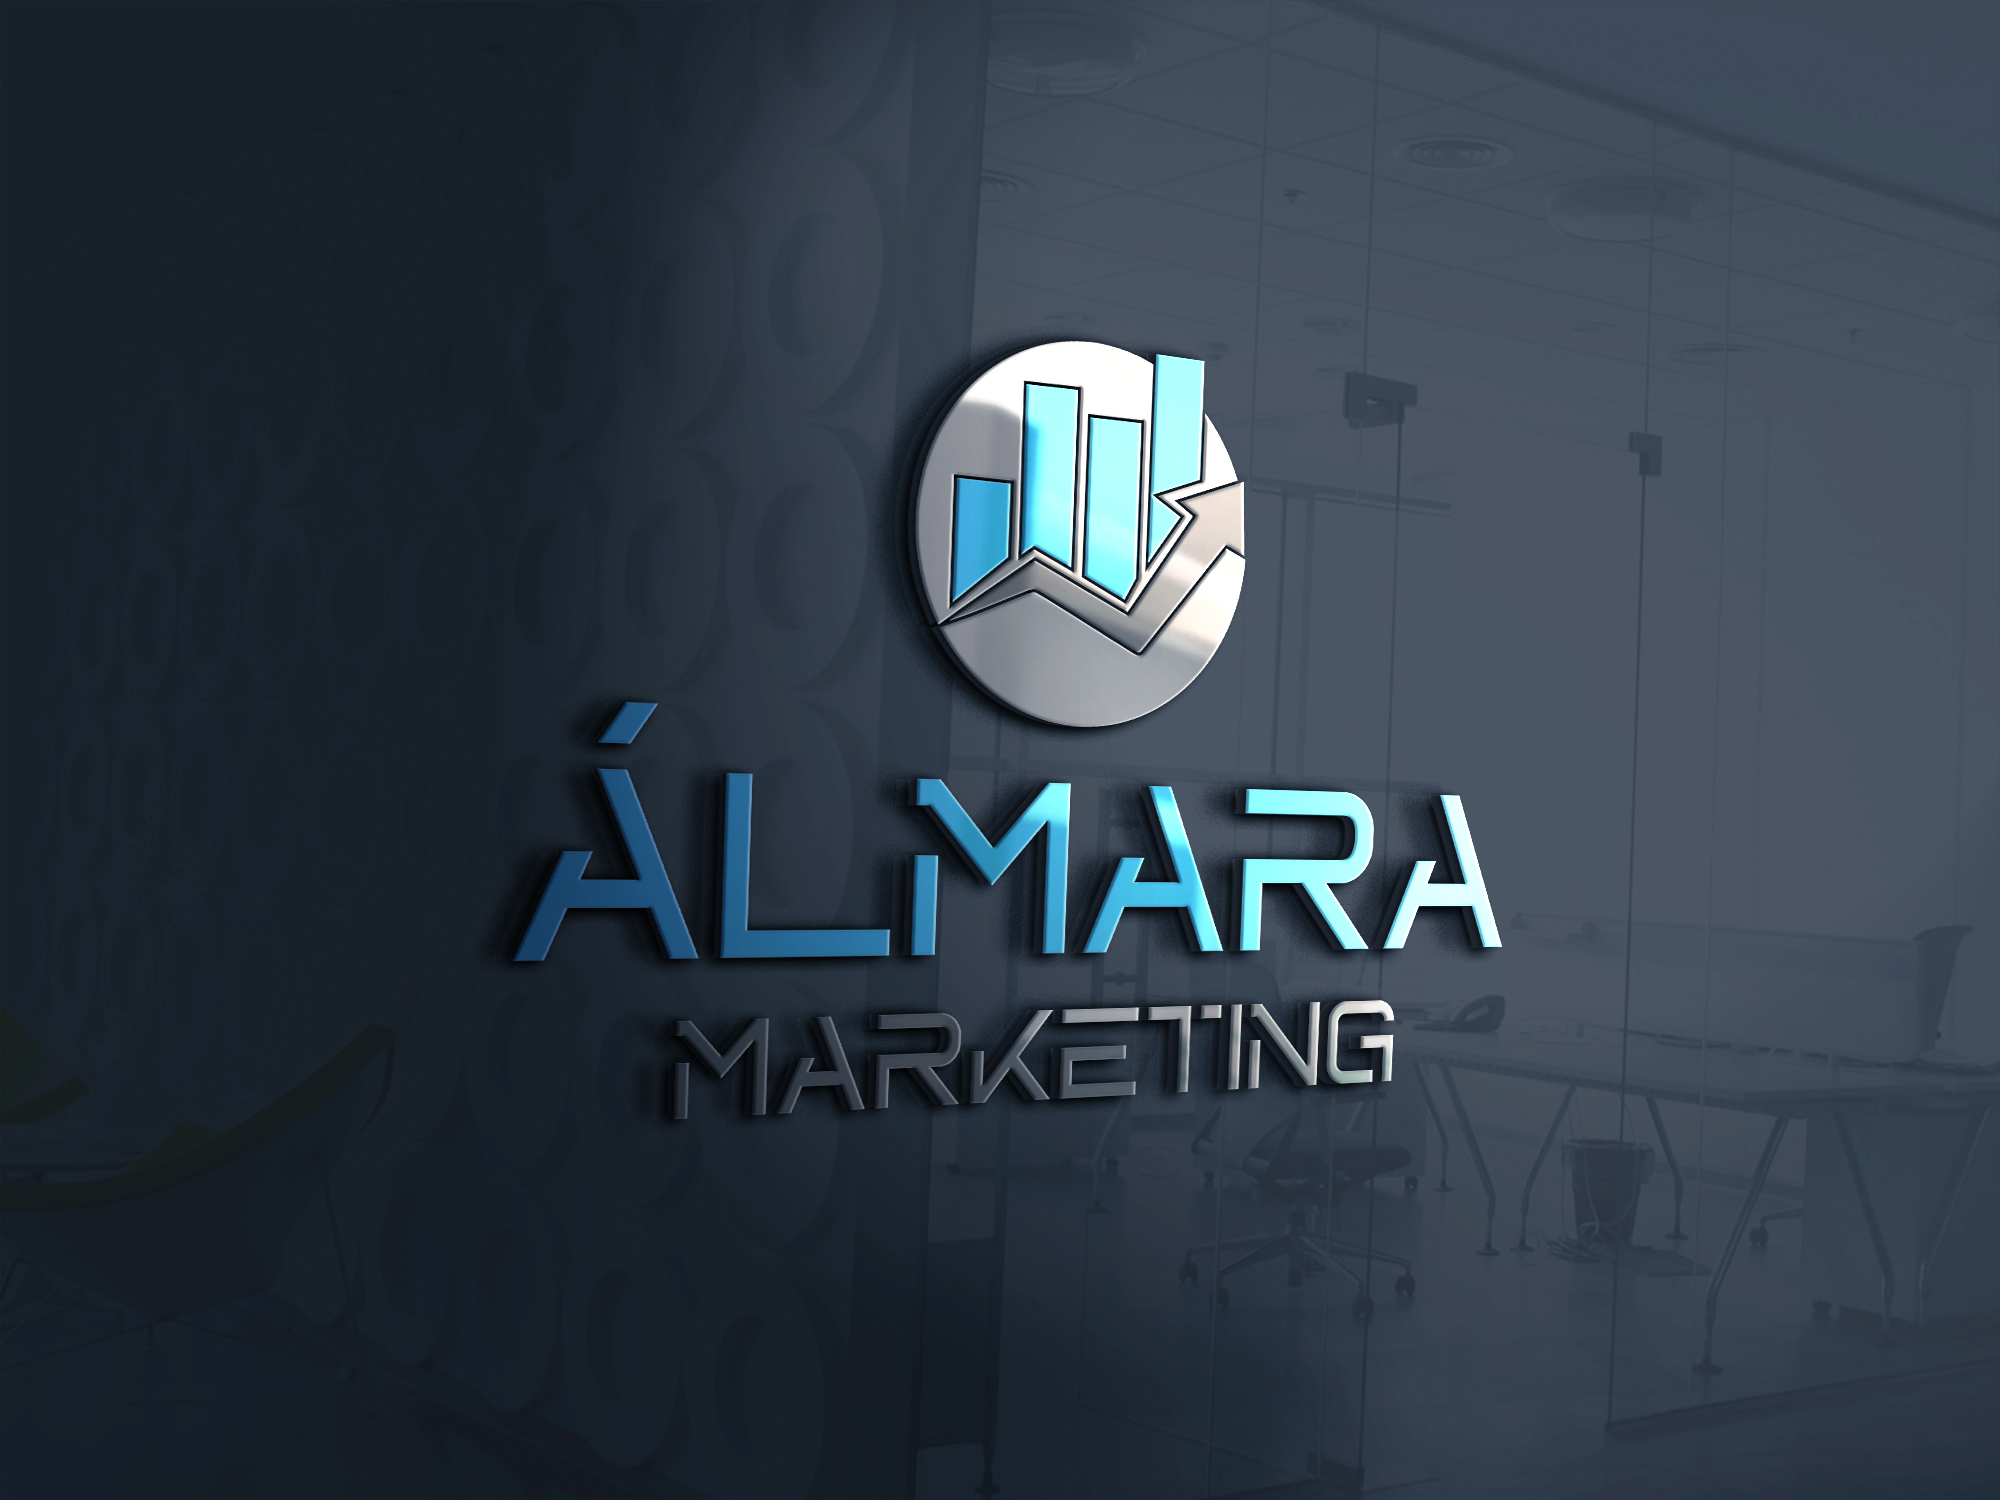 Álmara Marketing